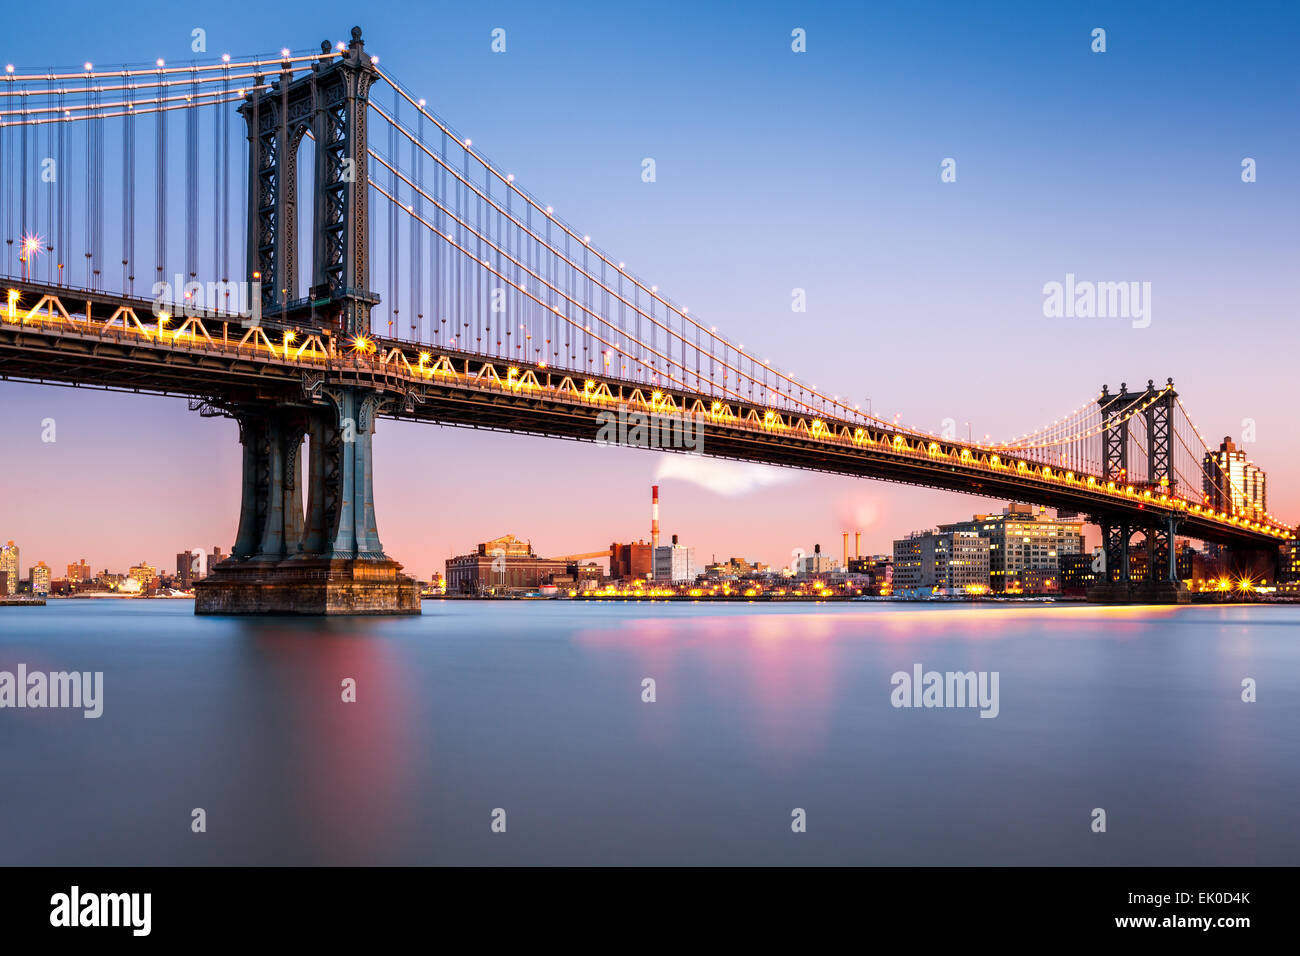 Manhattan Bridge illuminated at dusk (very long exposure for a perfectly smooth water) - Stock Image